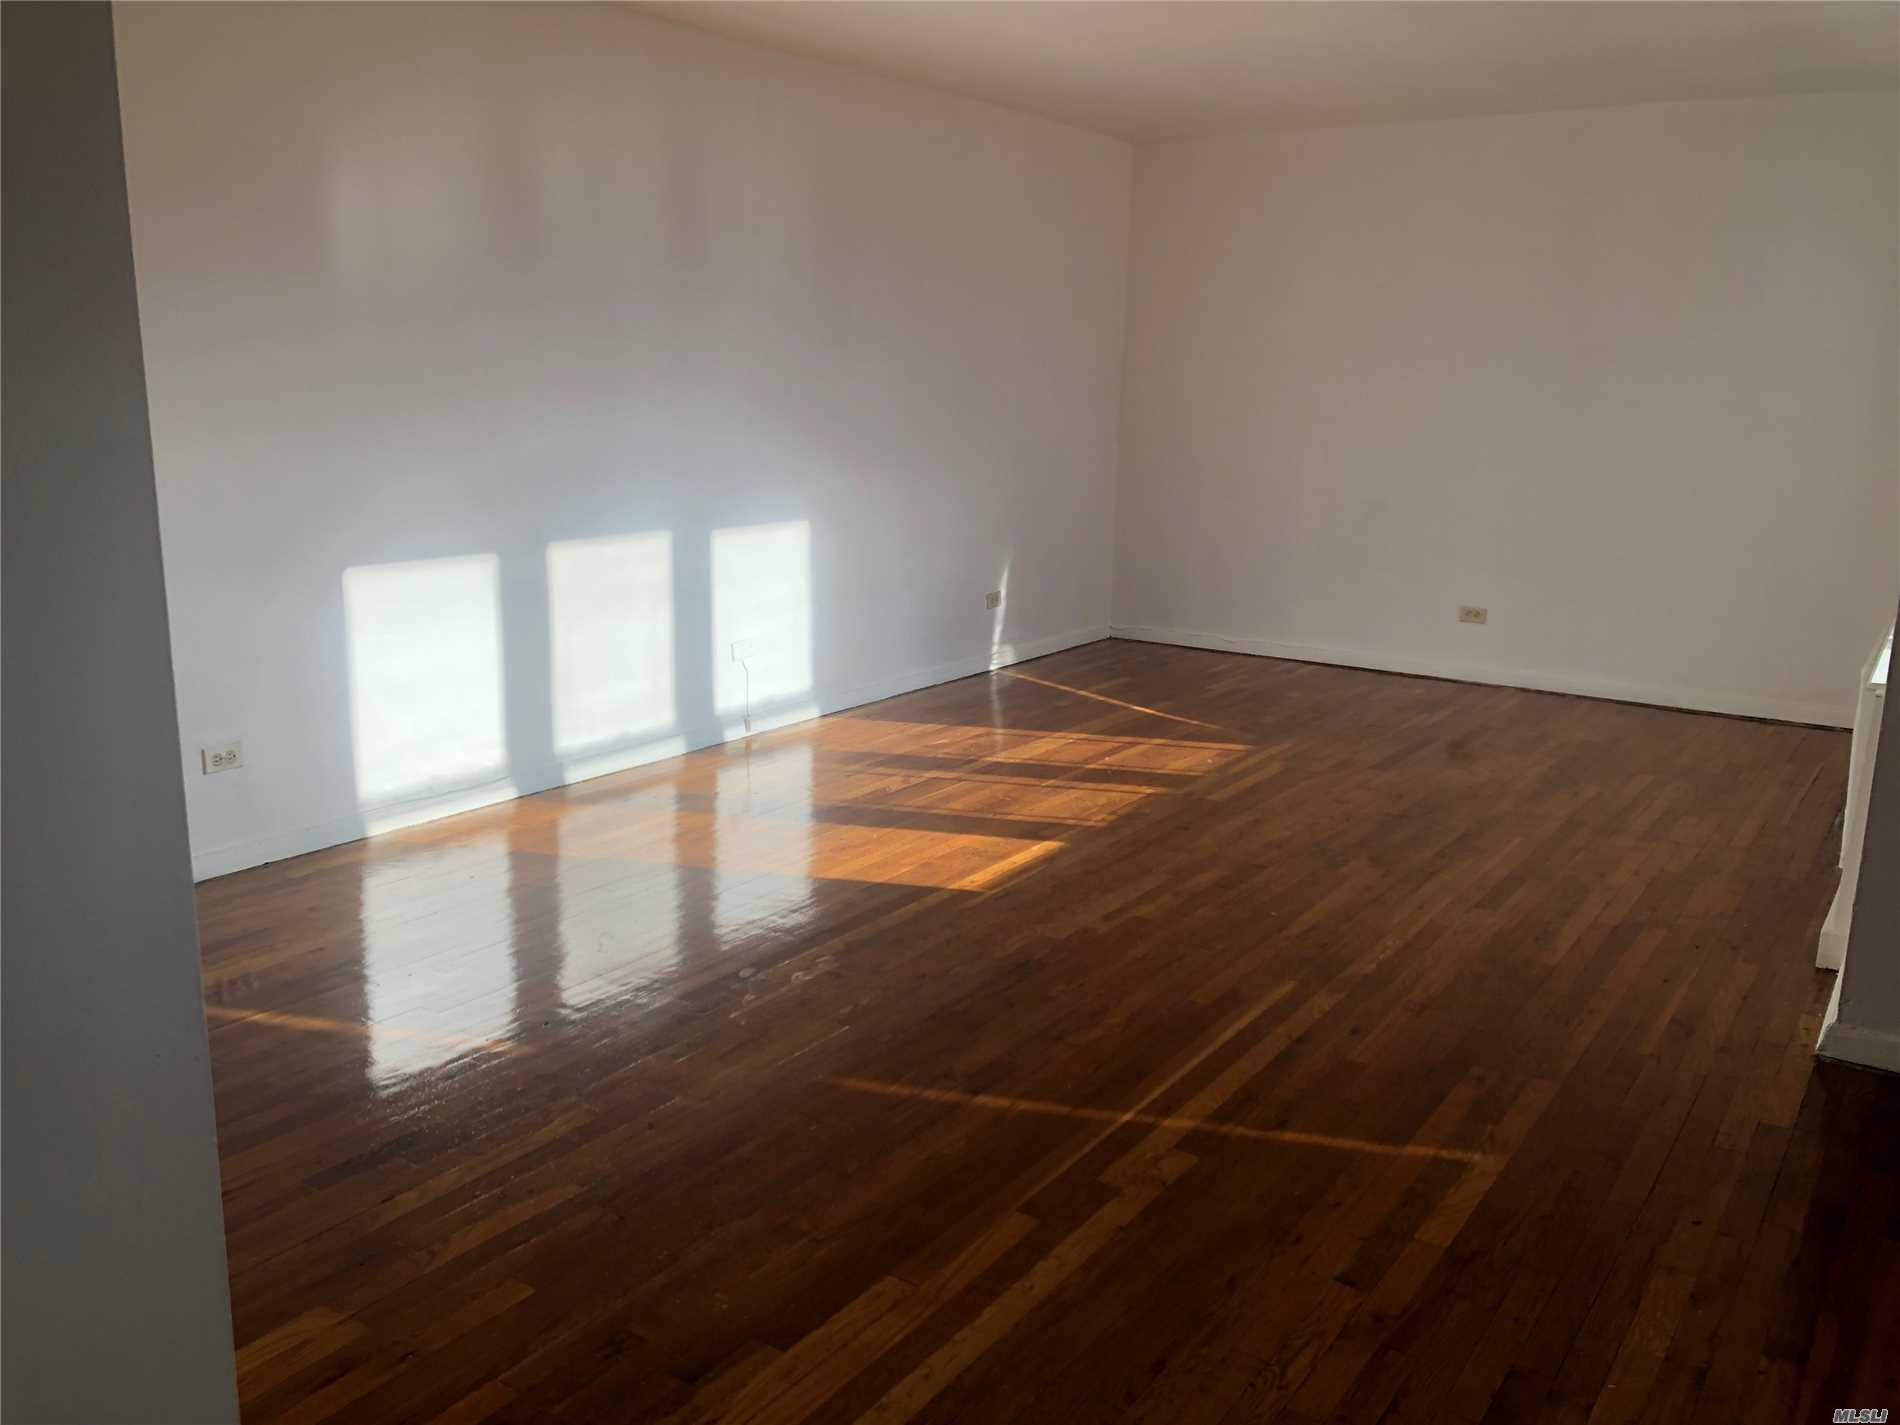 New Fresh Paint And Hardwood Floor, Sunny Bright 1200Sqft, Minutes To #7 Subway Main St Station And Lirr, One Block Away From Supermarket, Convenient To All.